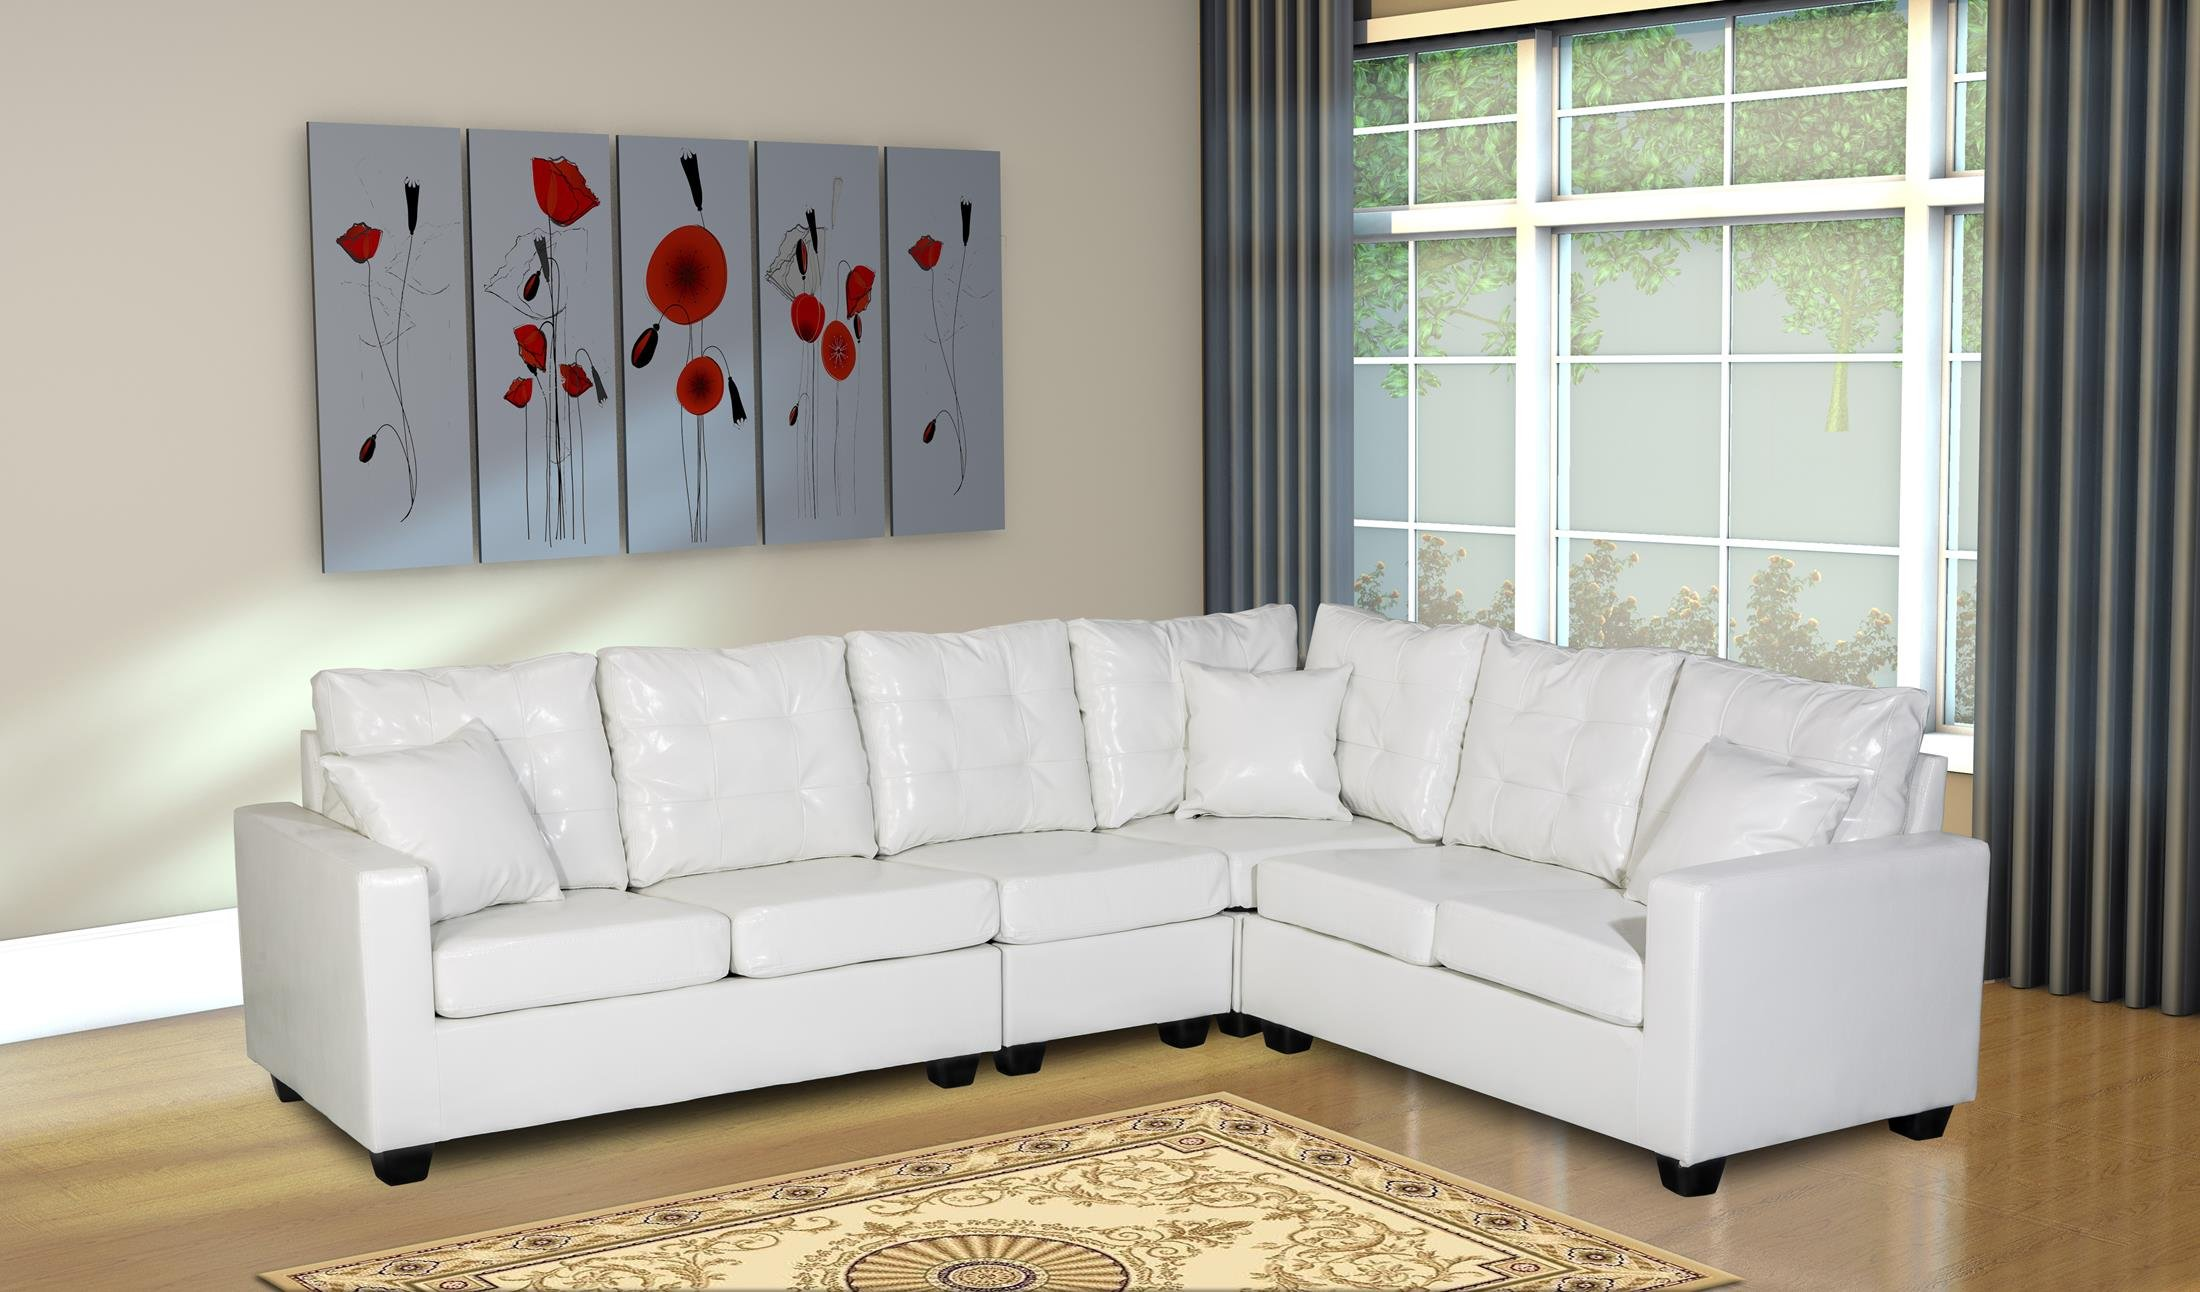 "Oliver Smith - Large White Leather Modern Contemporary Upholstered Quality Sectional Left or Right Adjustable Sectional 103"" x 81"" x 35"" s287white - Fixed Plush Back Cushions to keep things neat Adjustable Left or Right. 103"" W x 83"" D x 35"" s287lgrey H Fast Assembly - Just Screw on the Feet - sofas-couches, living-room-furniture, living-room - 81J87TTA8uL -"